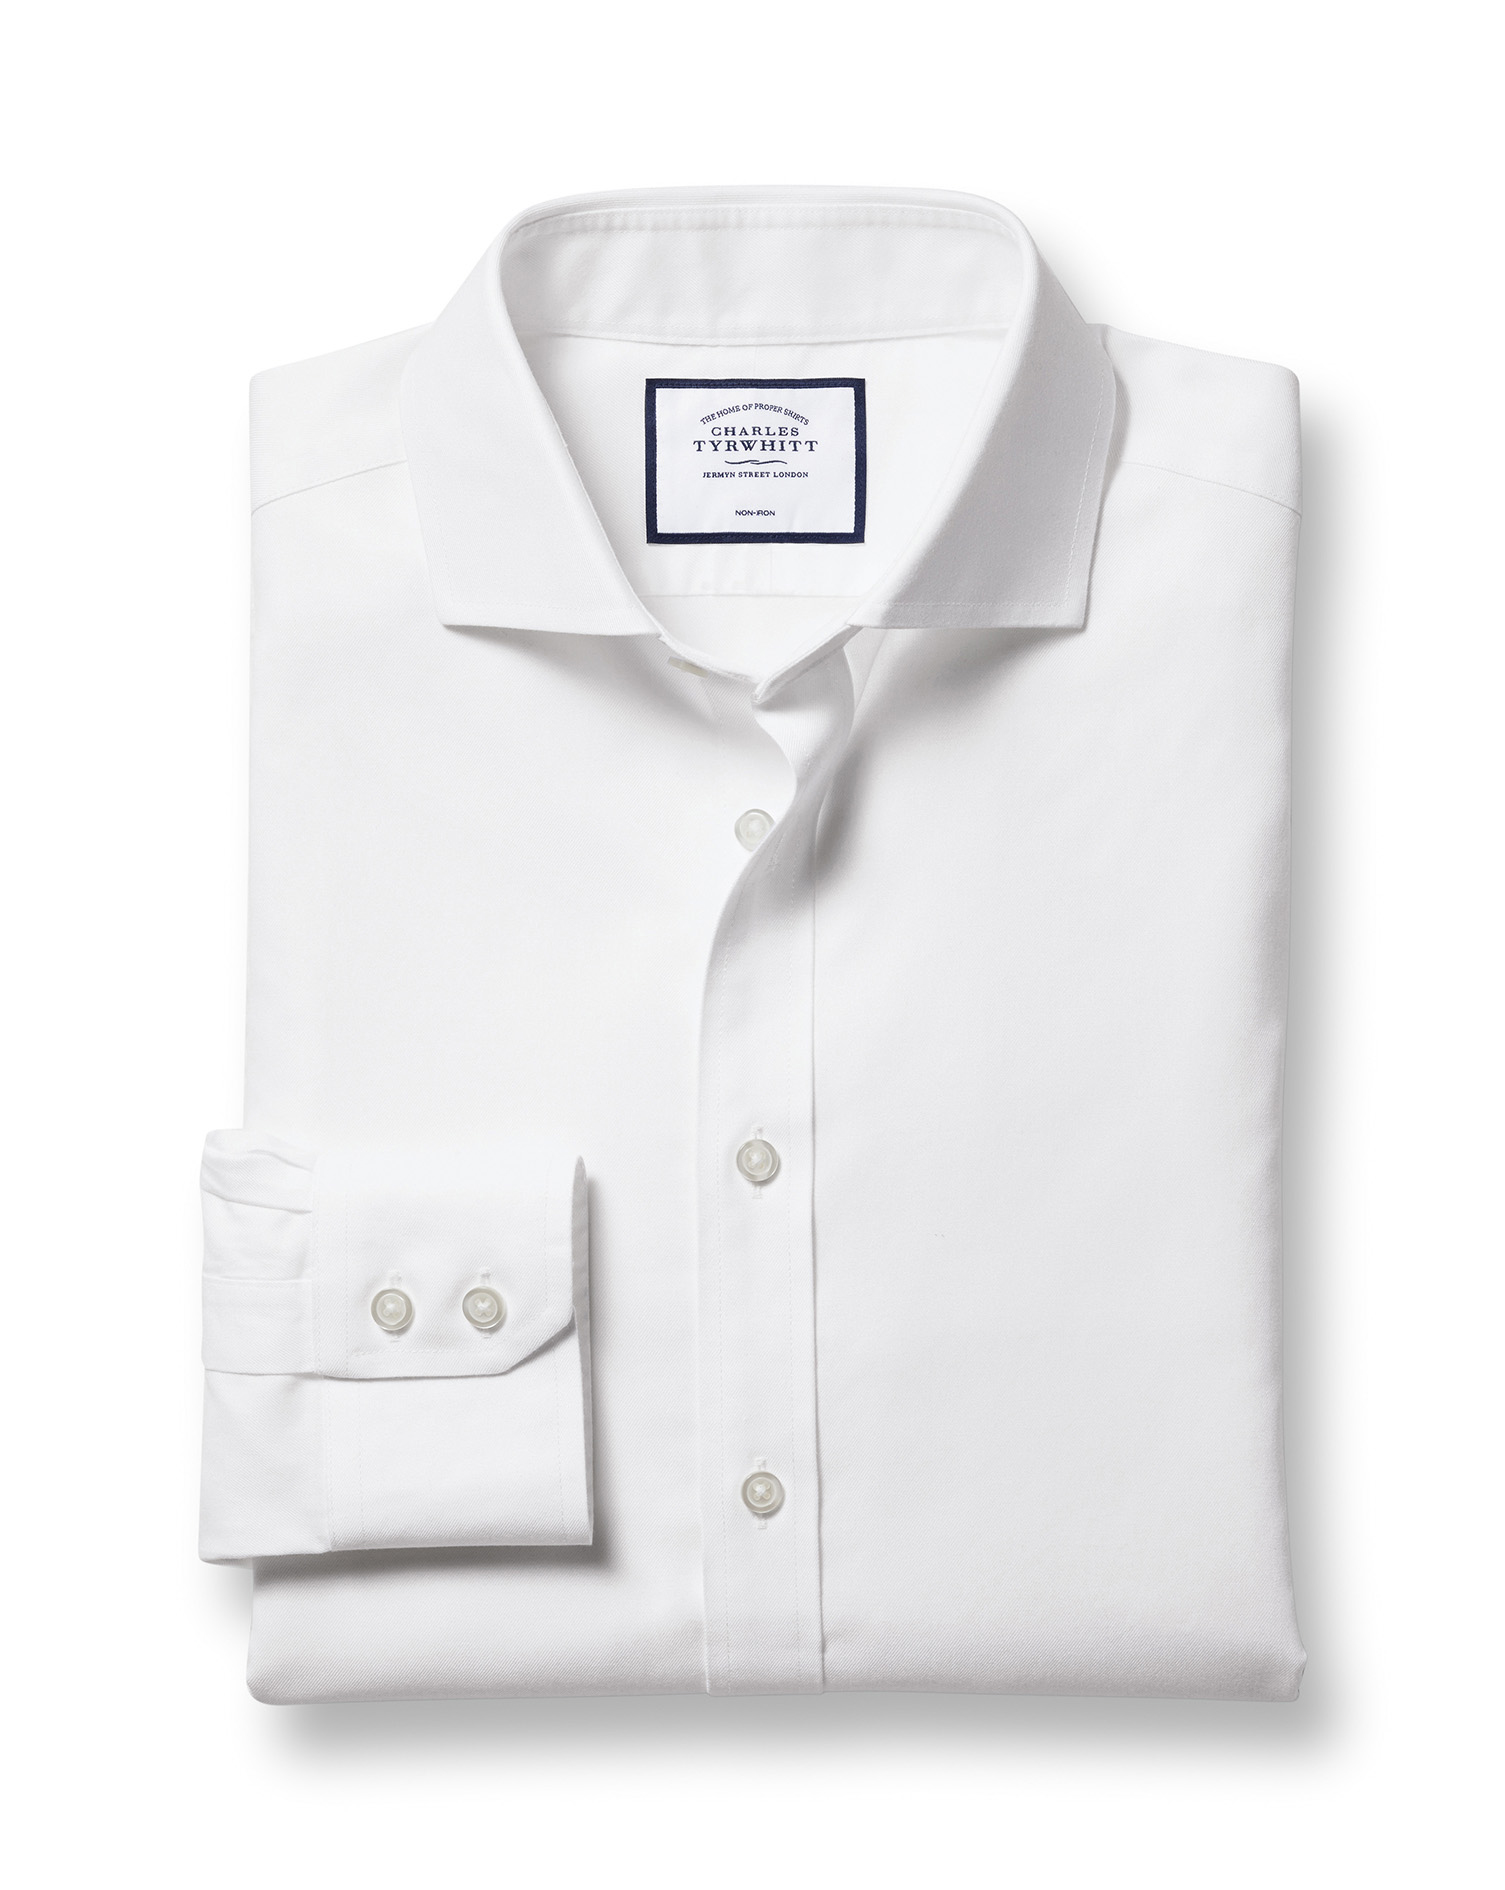 Classic Fit Cutaway Non-Iron Twill White Cotton Formal Shirt Single Cuff Size 15/33 by Charles Tyrwh